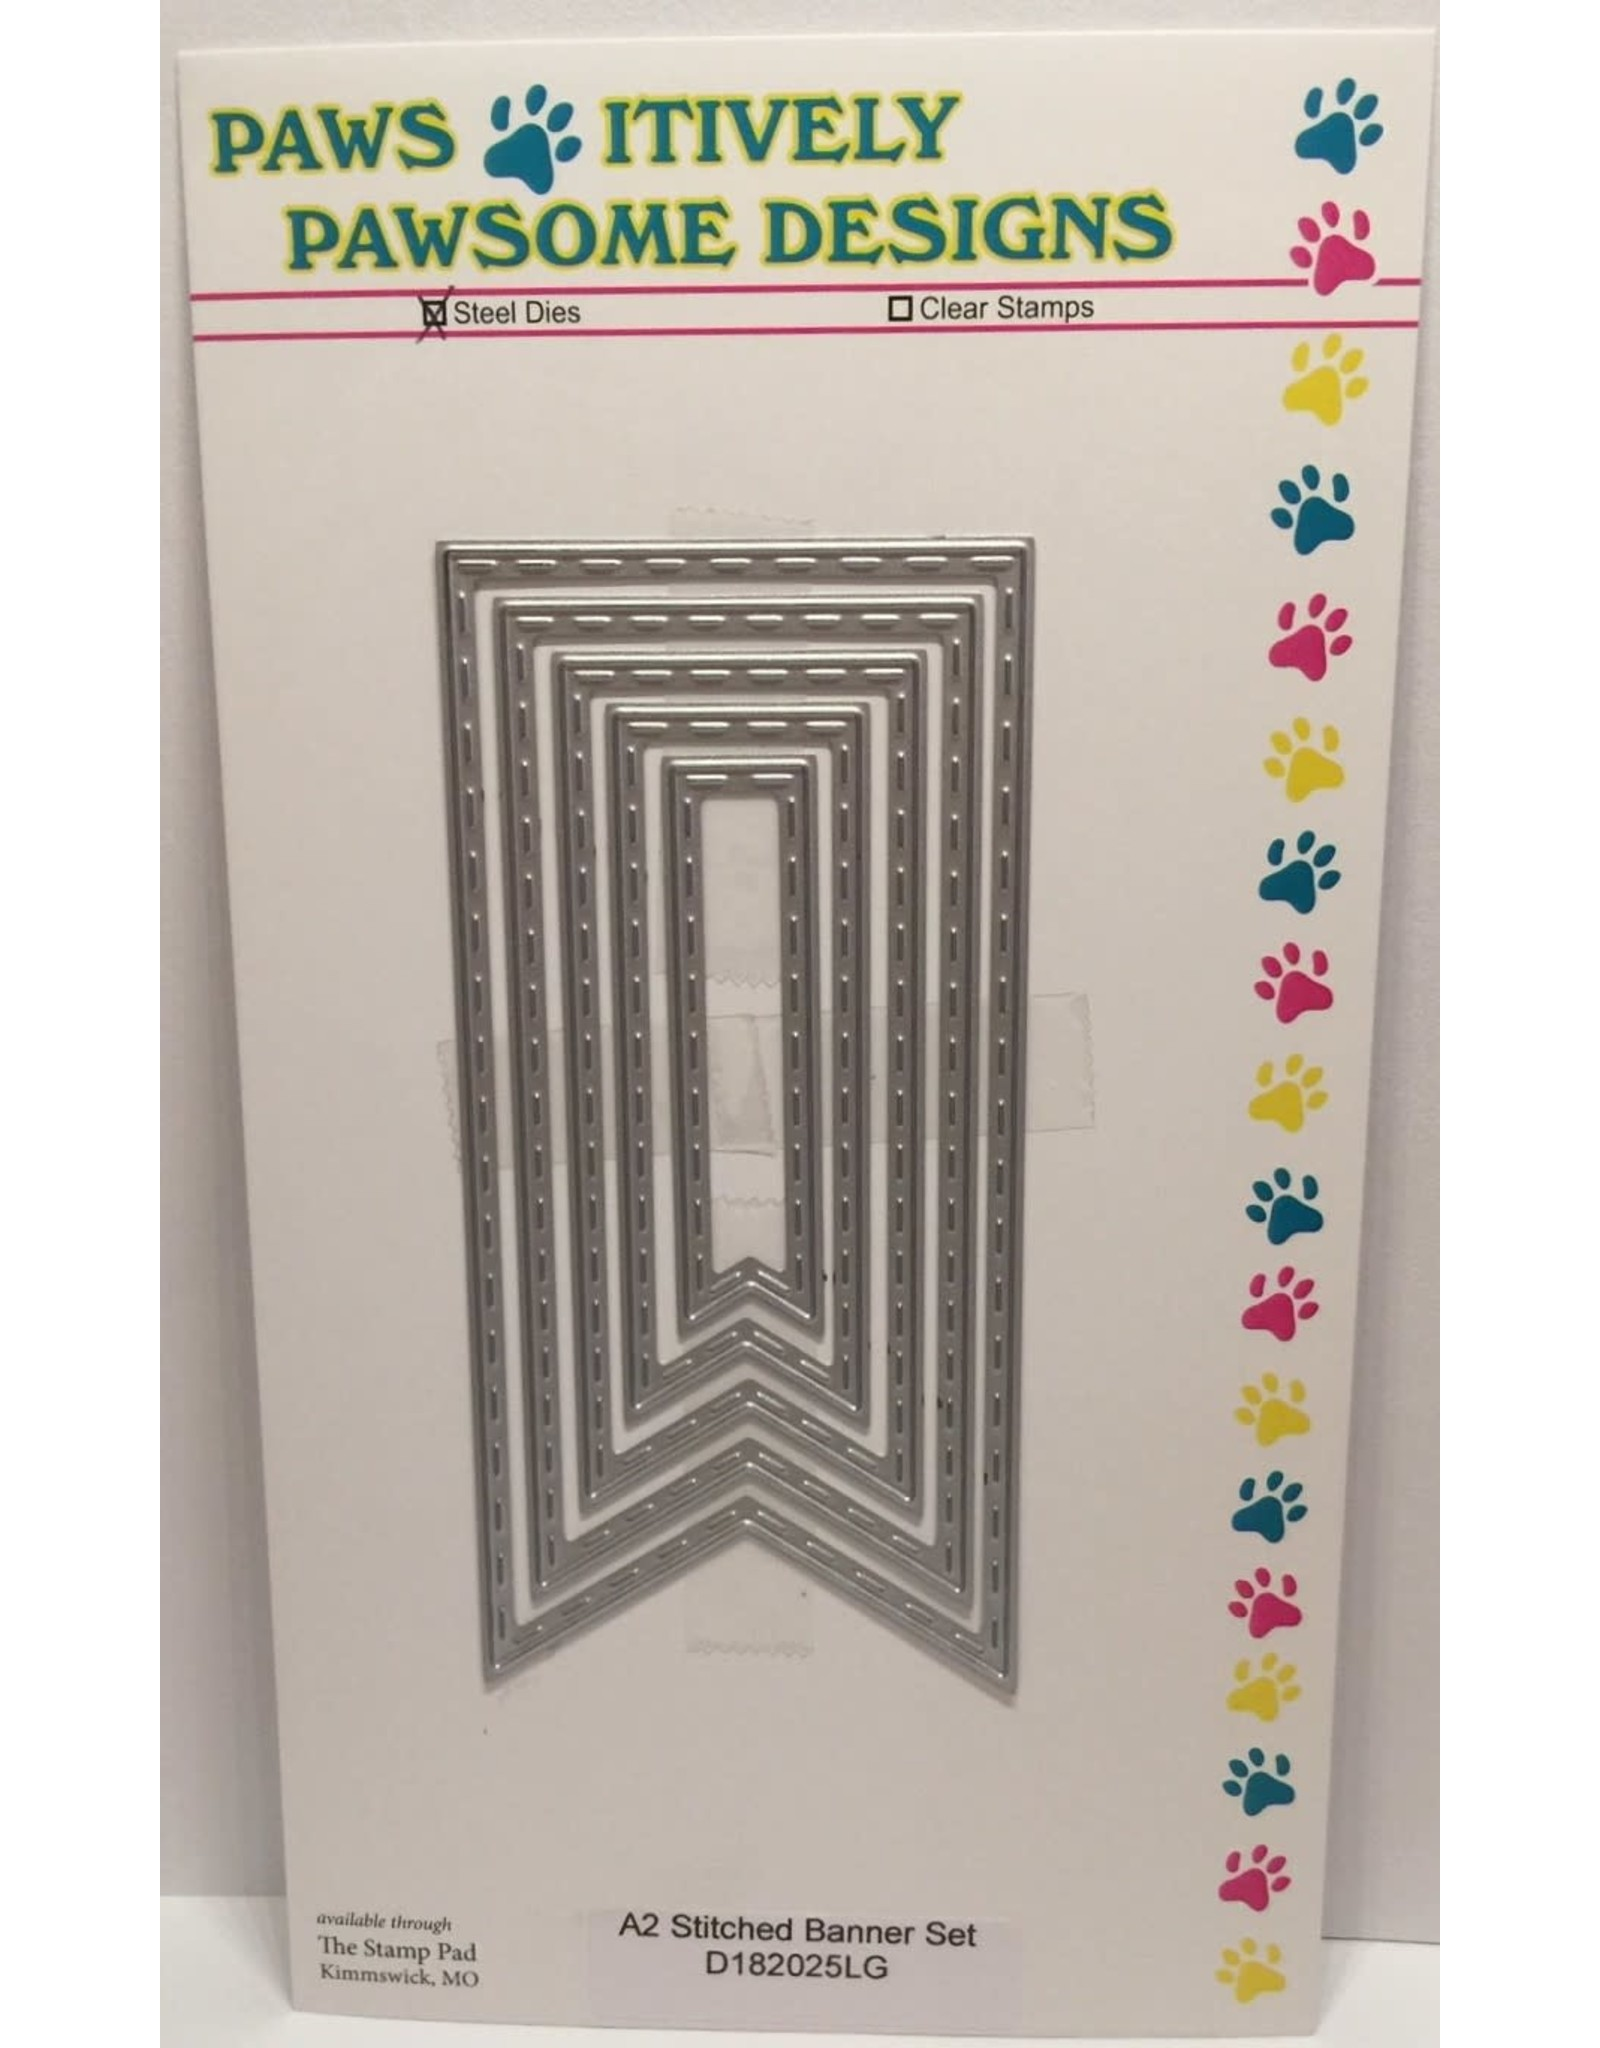 Paws-Itively Pawsome Designs A2 Stitched Banner Set - Die